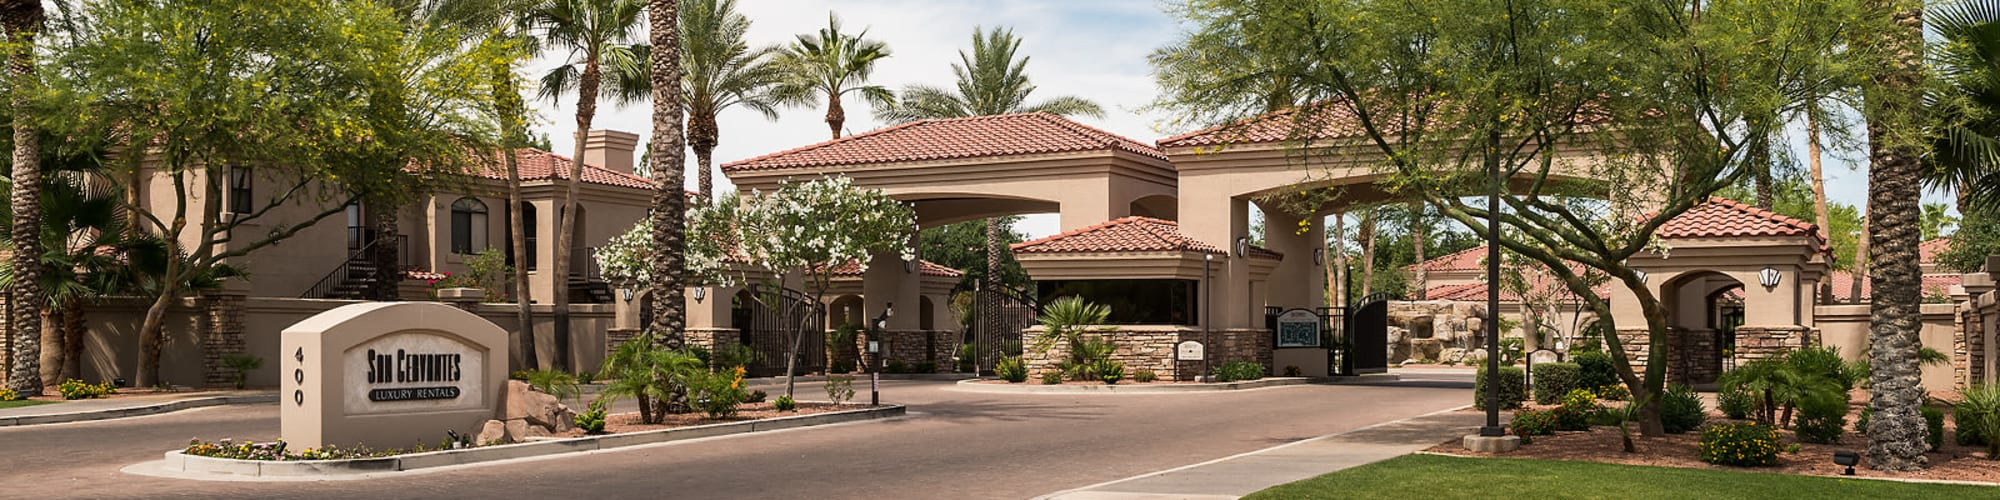 Apply to live at San Cervantes in Chandler, Arizona